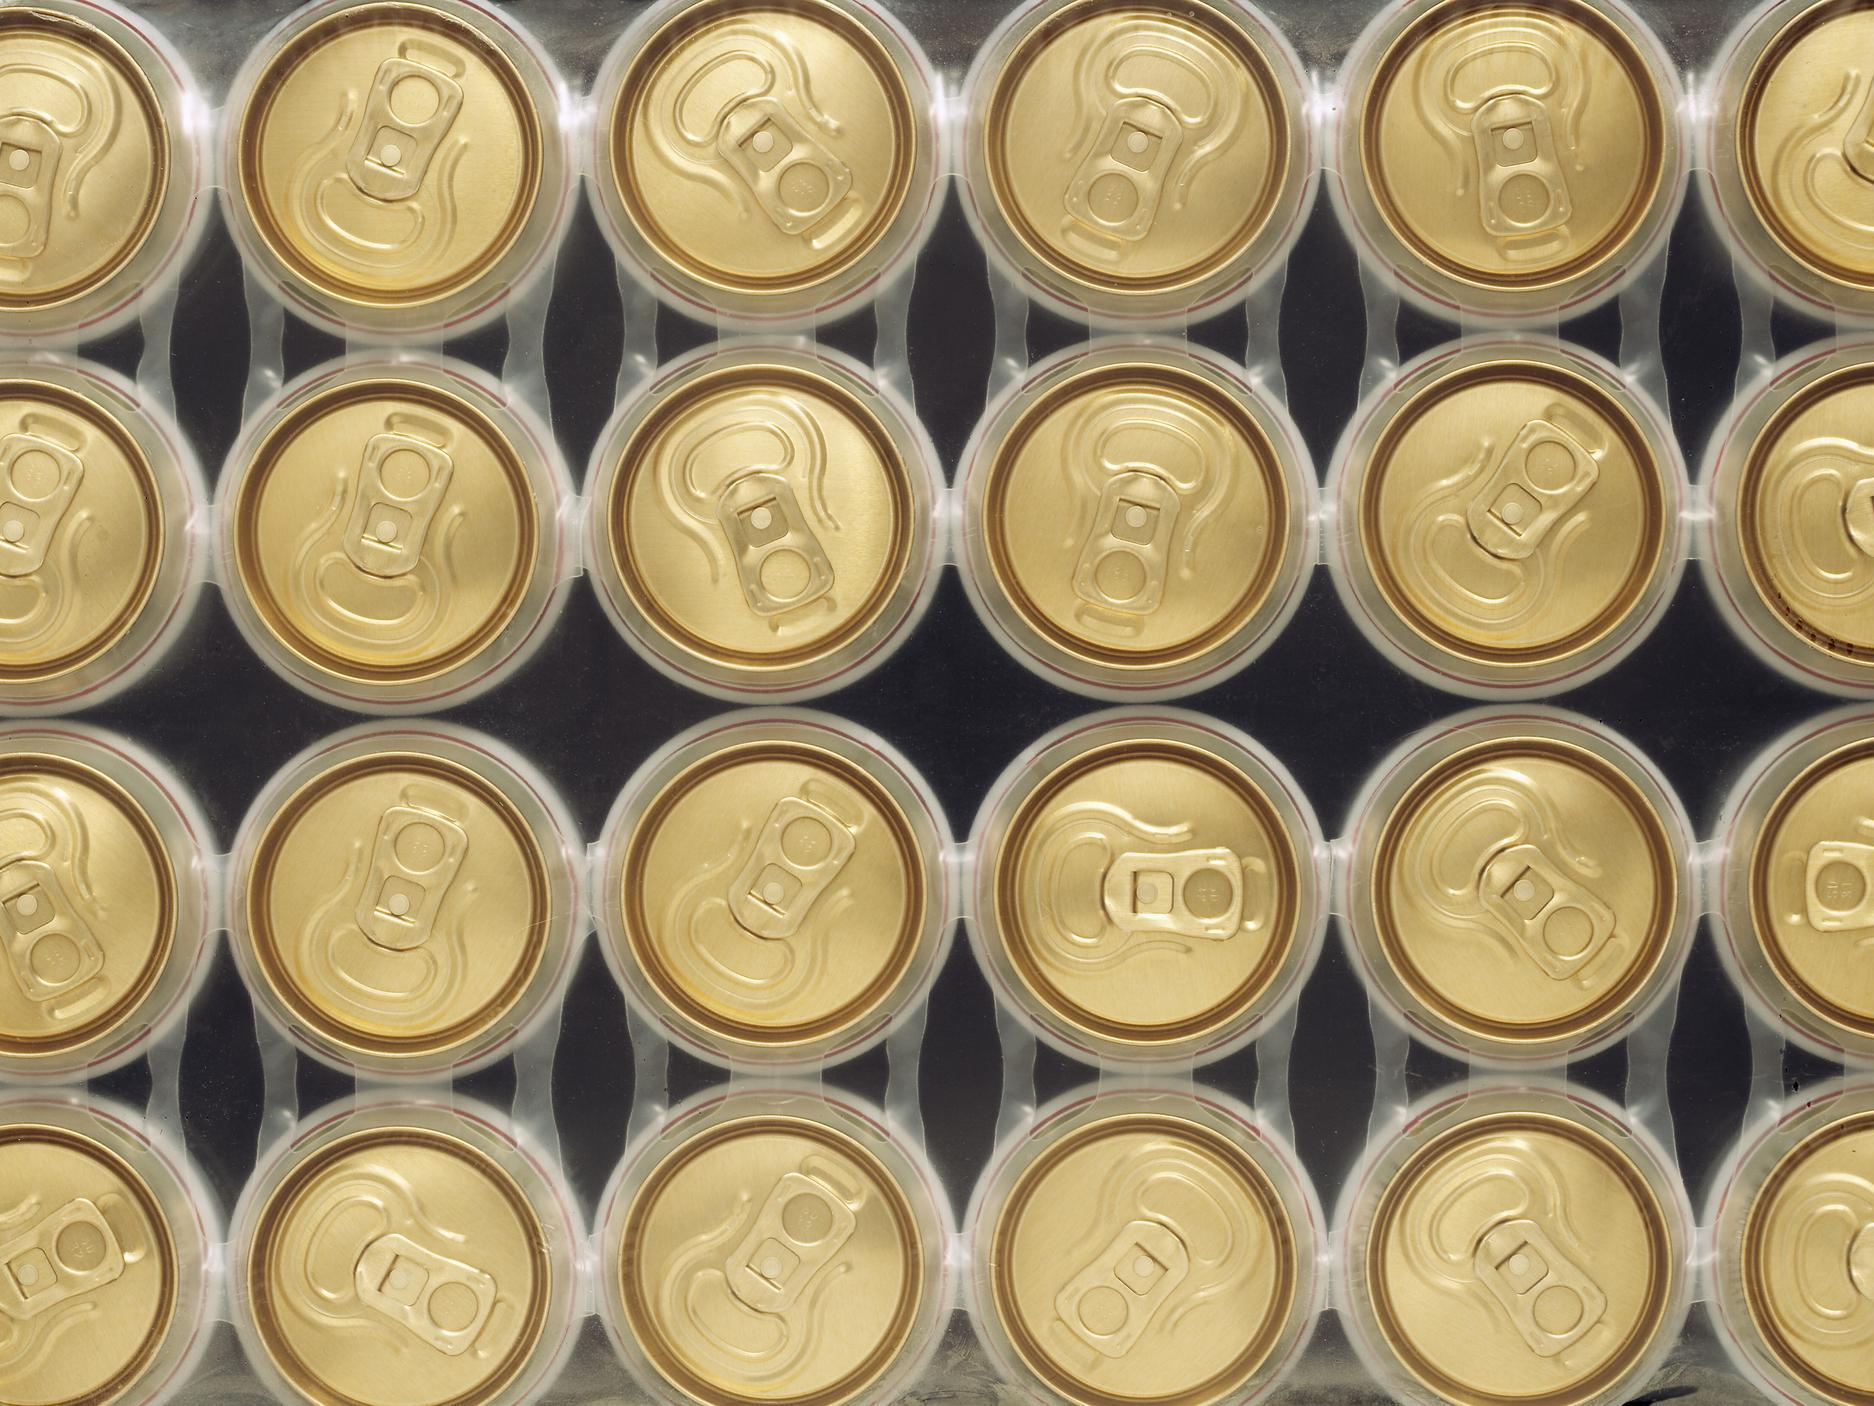 Budweiser and Stella Artois to stop using plastic ring packaging for cans of beer